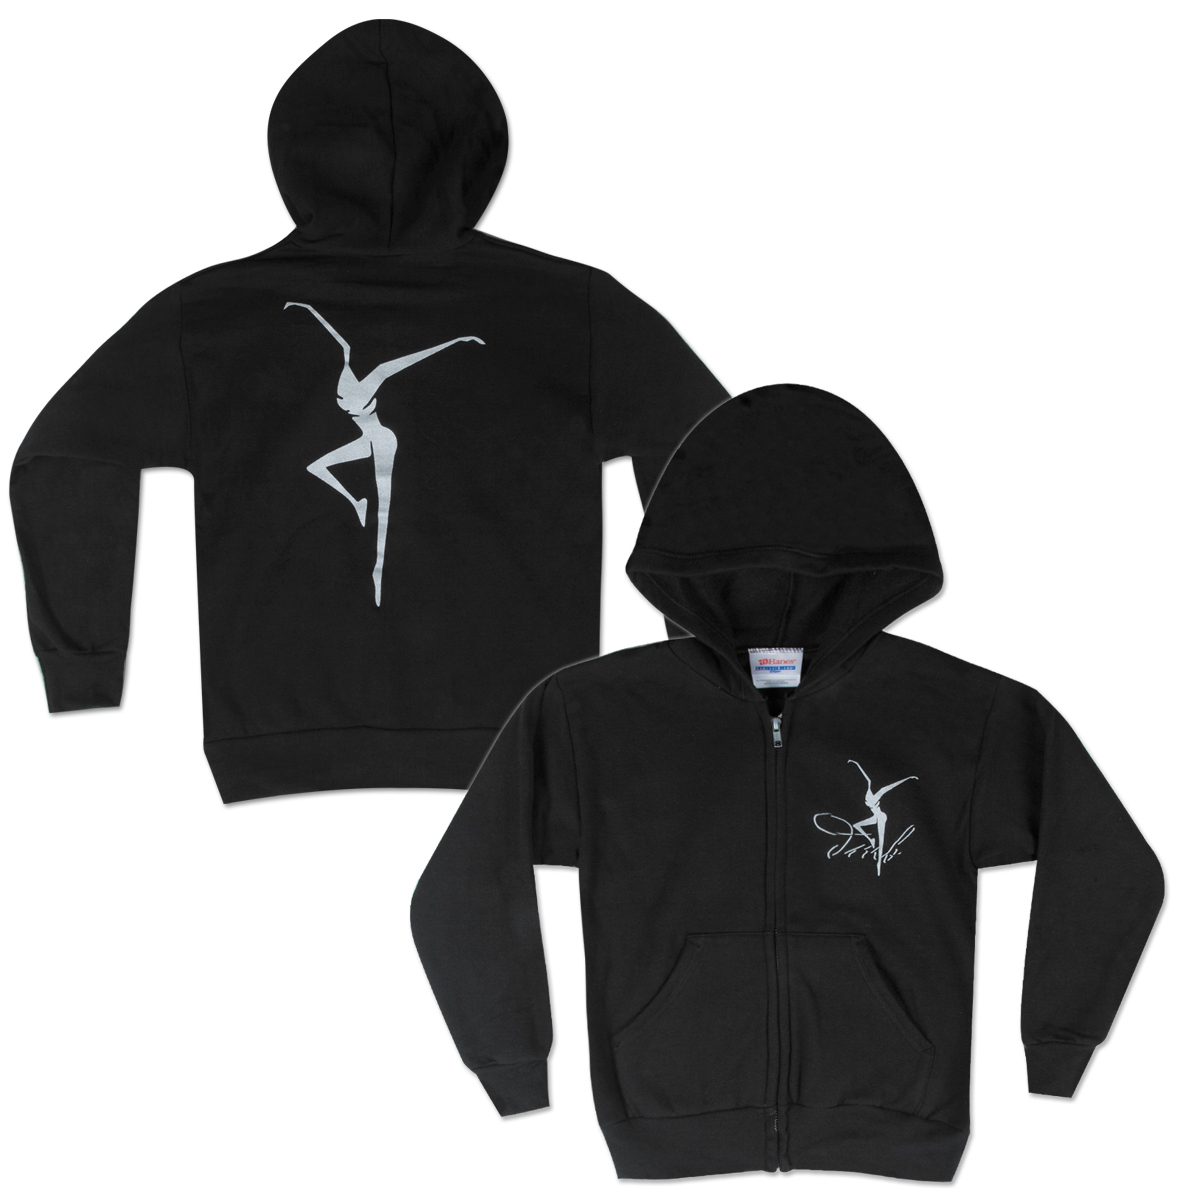 DMB Silver Fire Dancer Youth Zip Hoodie